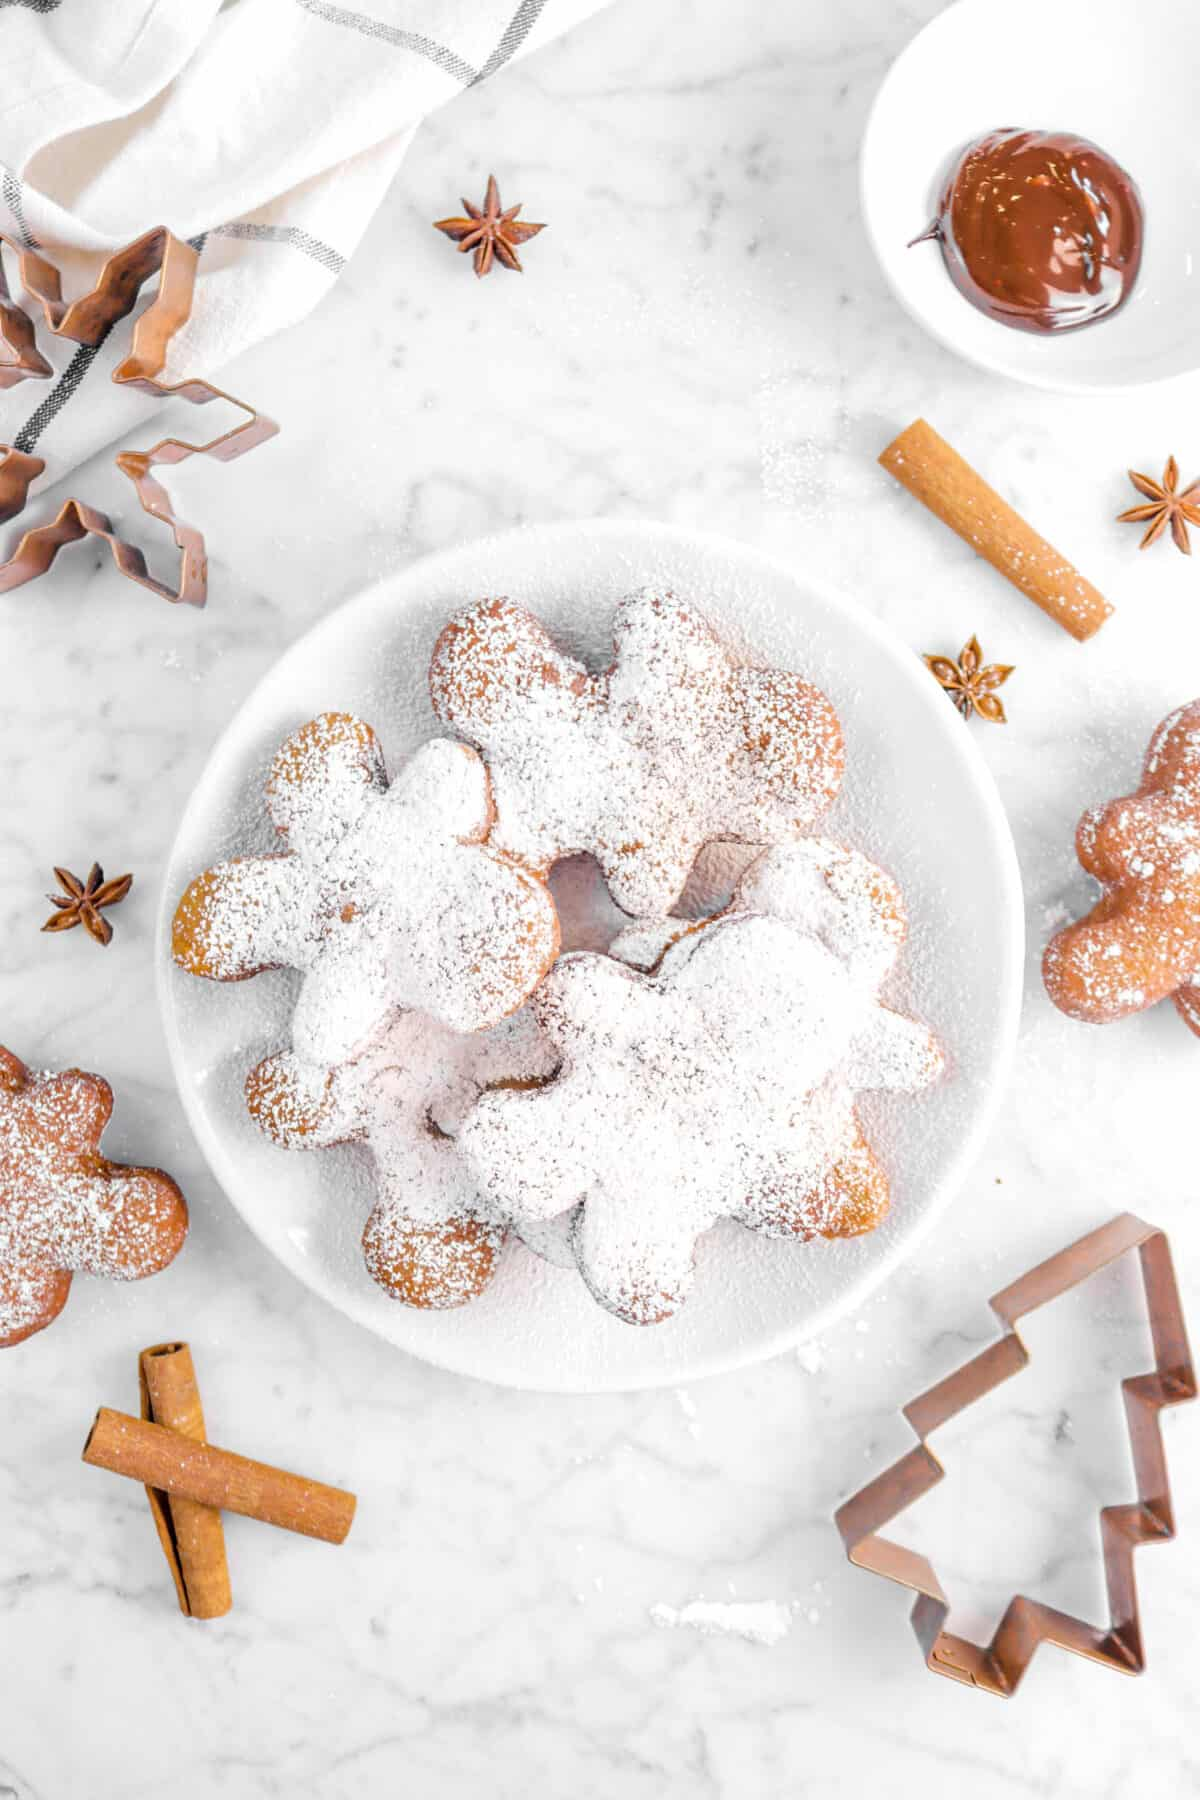 bowl of dusted beignets with whole spices, cookie cutters, chocolate sauce, and more beignets on counter